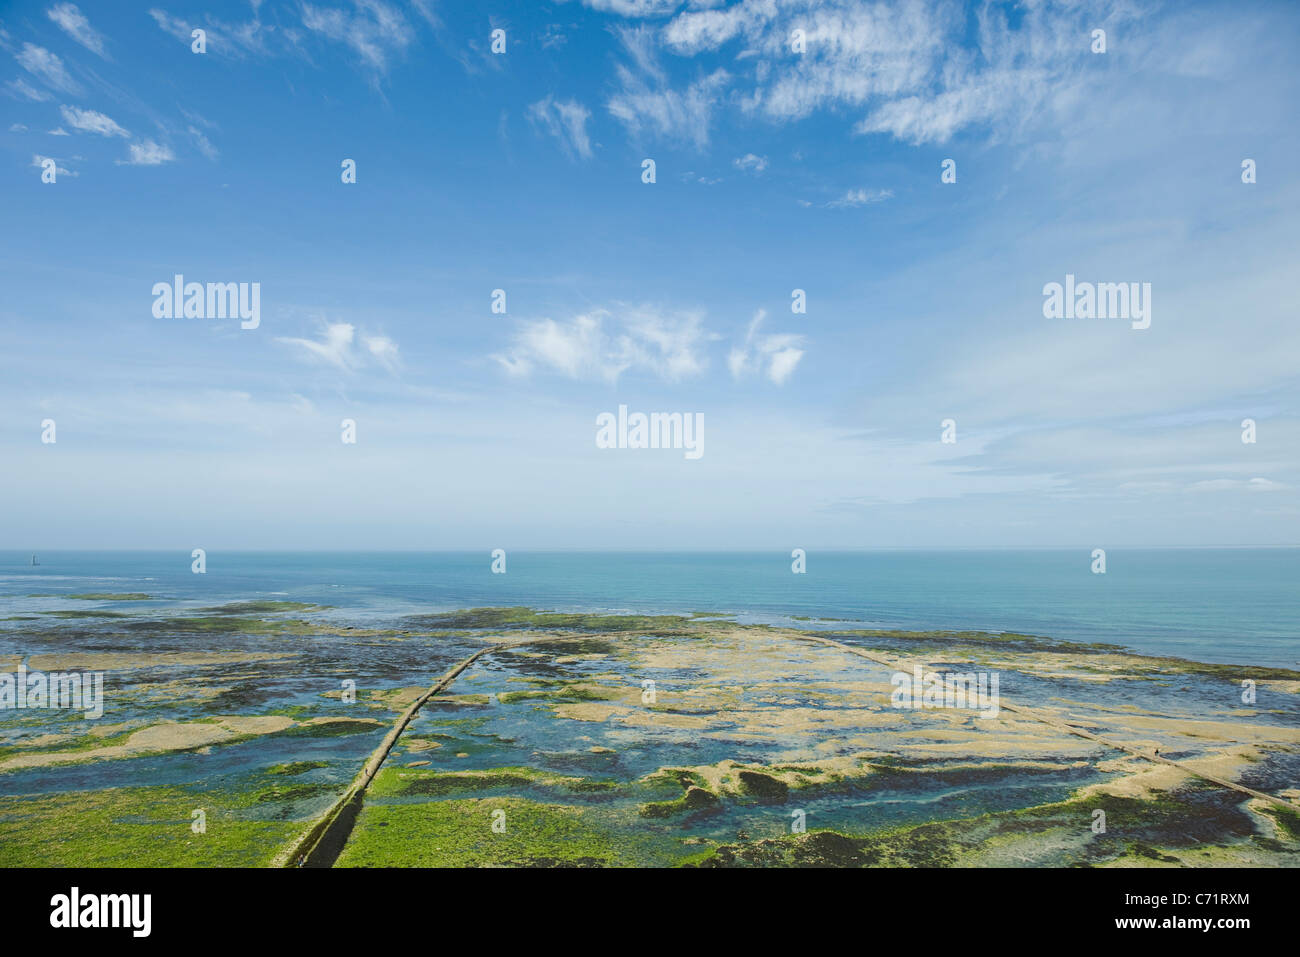 Aerial view of coastal Ile de RŽ, Charente-Maritime, France - Stock Image